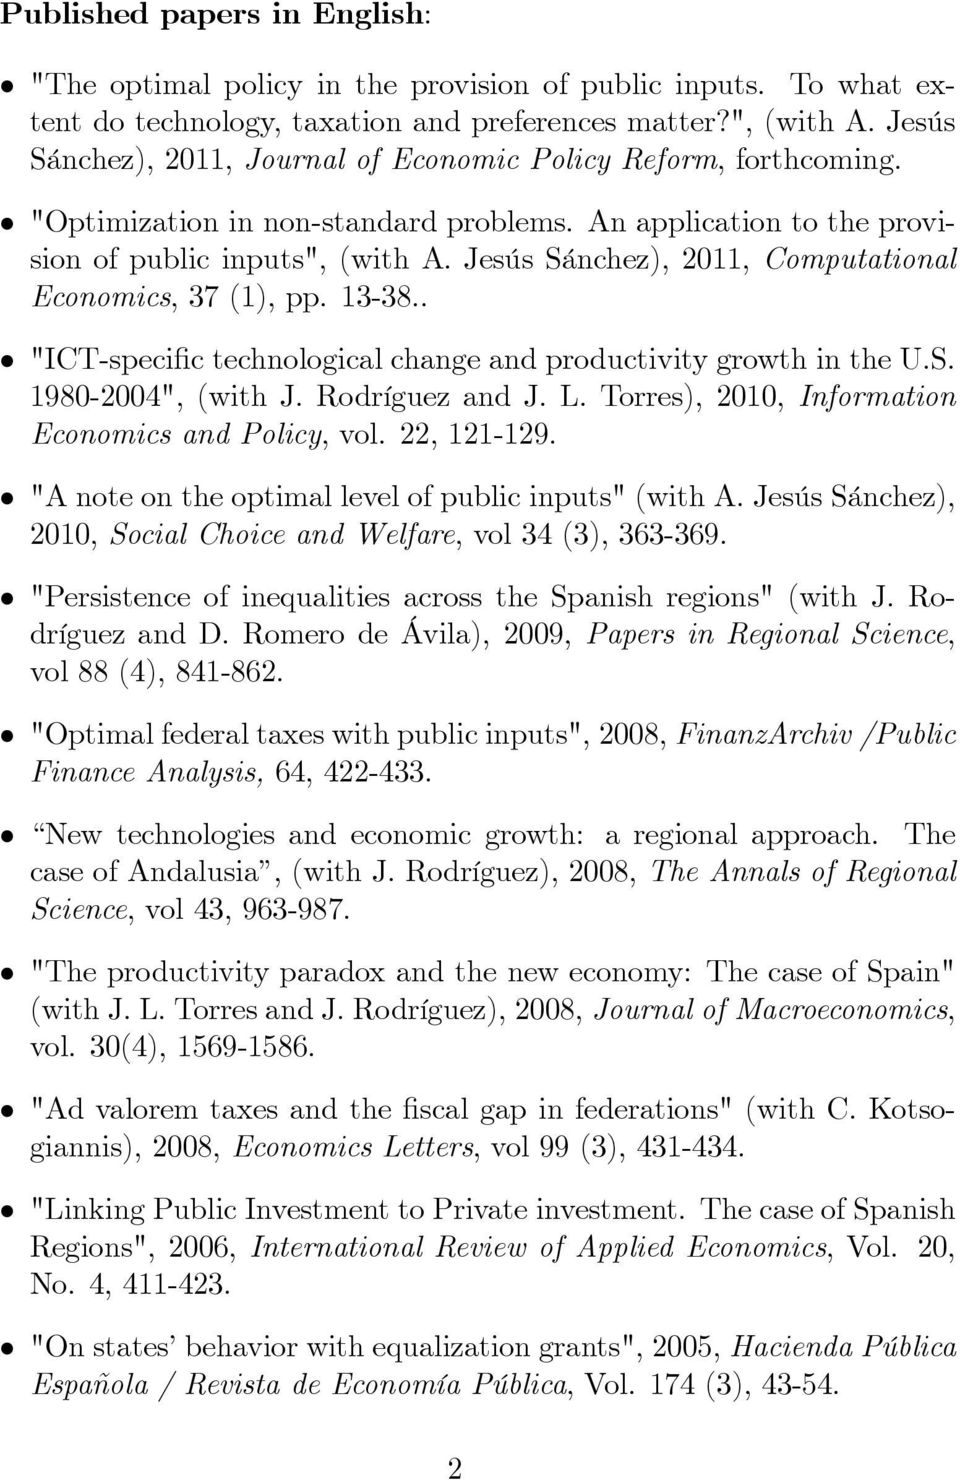 "Jesús Sánchez), 2011, Computational Economics, 37 (1), pp. 13-38.. ""ICT-speci c technological change and productivity growth in the U.S. 1980-2004"", (with J. Rodríguez and J. L."